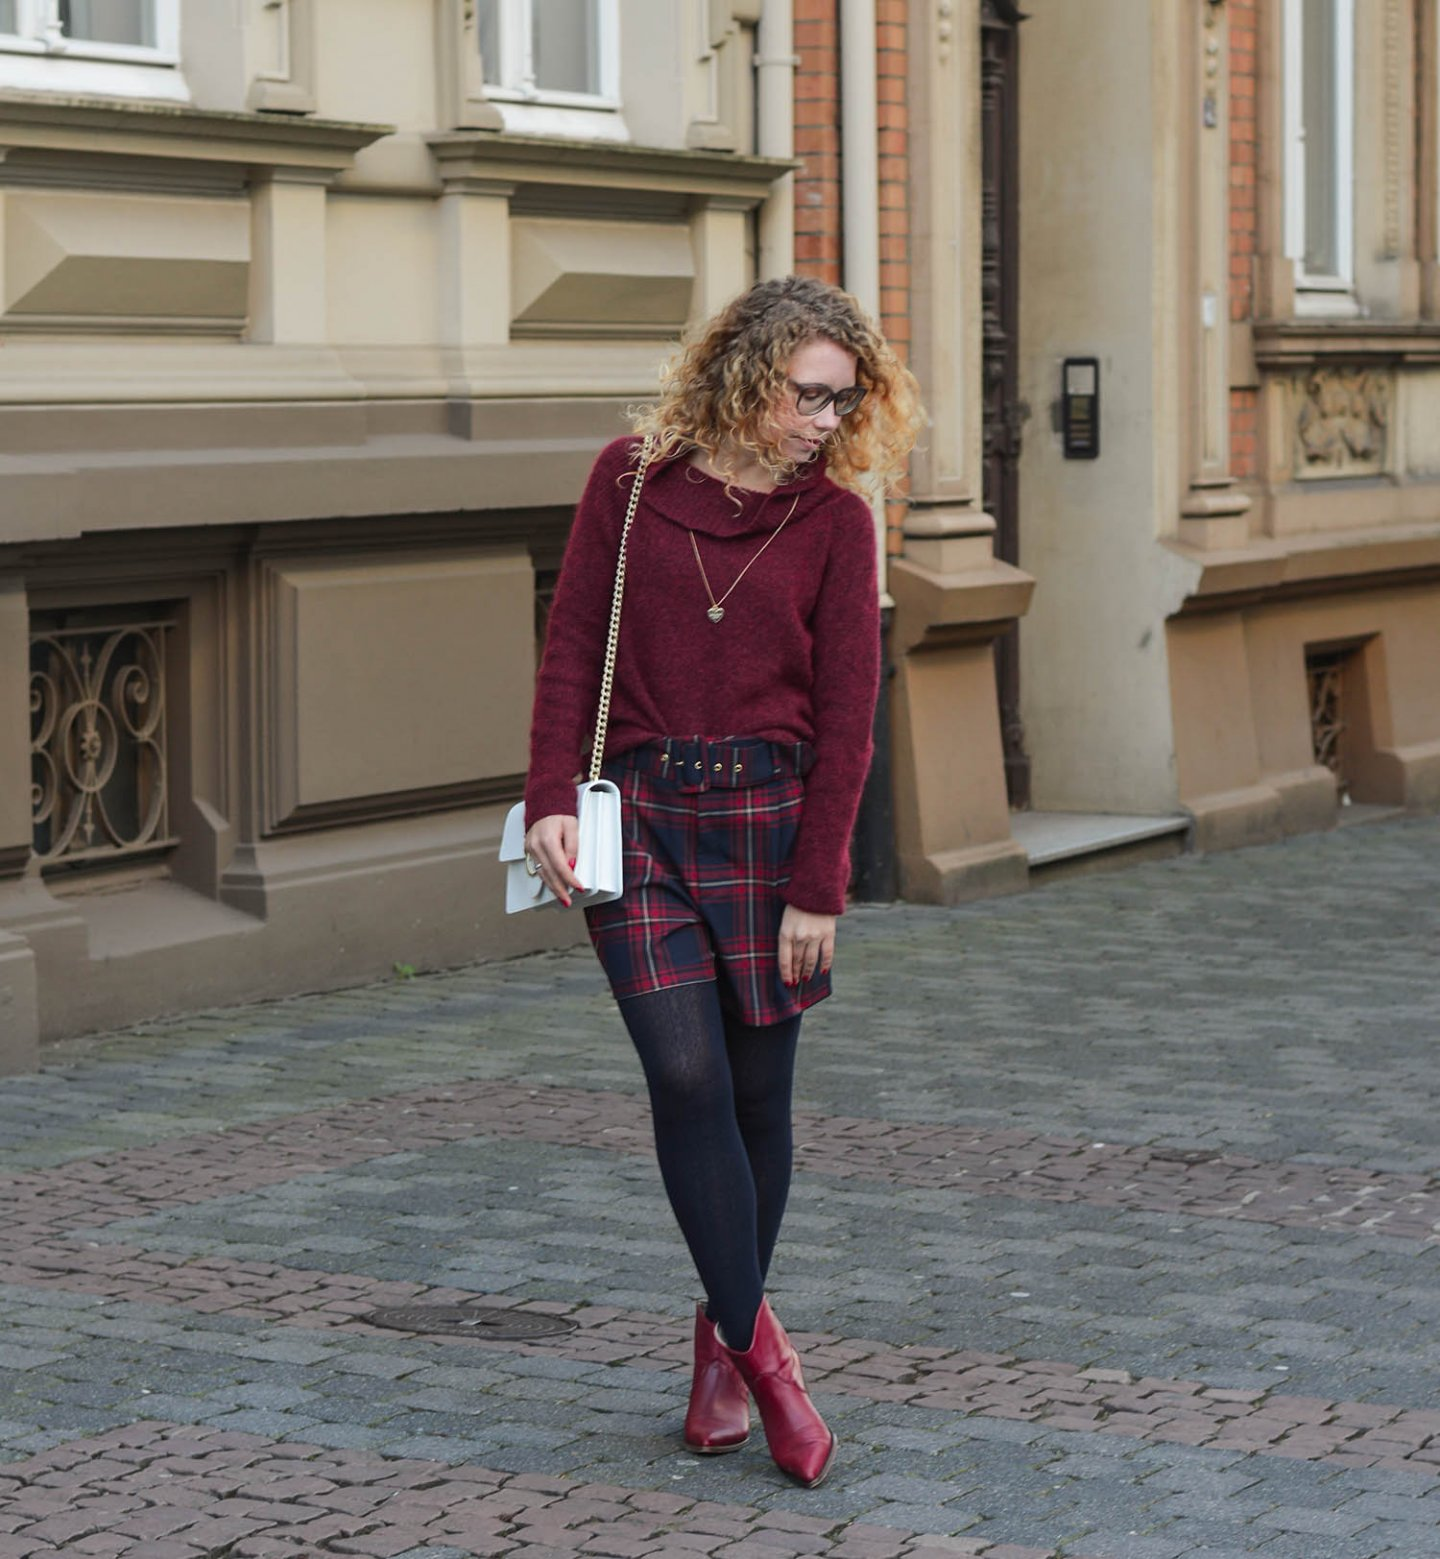 Tartan-Shorts-Cowboy-Boots-Pinko-Handtasche-Kationette-Fashionblog-Germany-Outfit